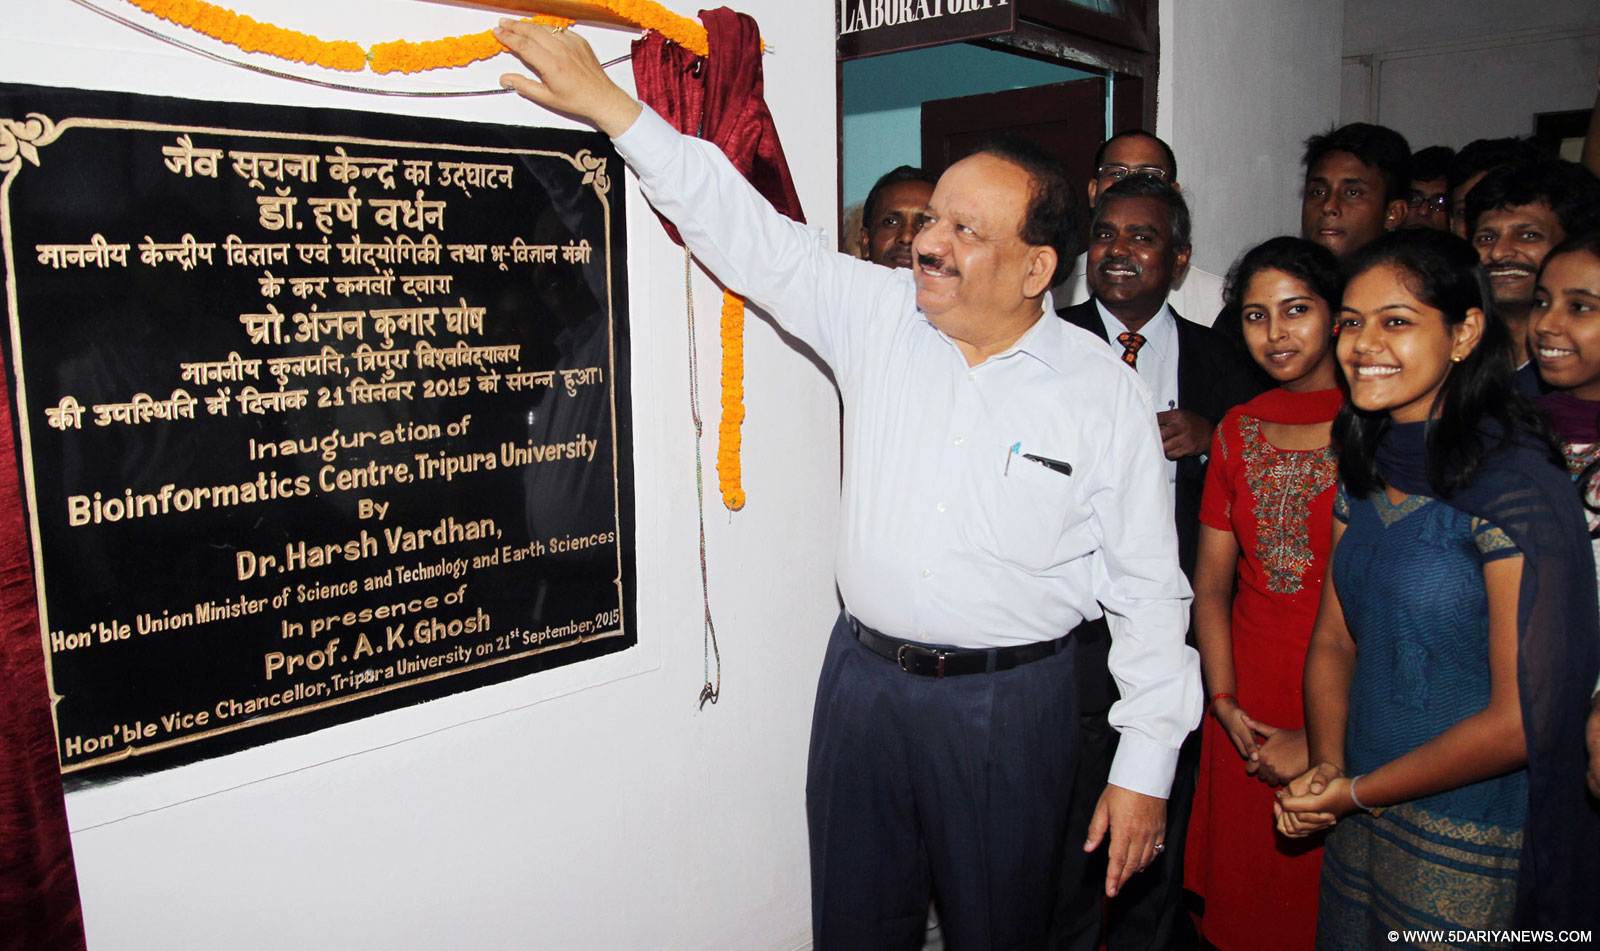 The Union Minister for Science & Technology and Earth Sciences, Dr. Harsh Vardhan inaugurating the Bioinformatics Centre, at Tripura University, Agartala on September 21, 2015.